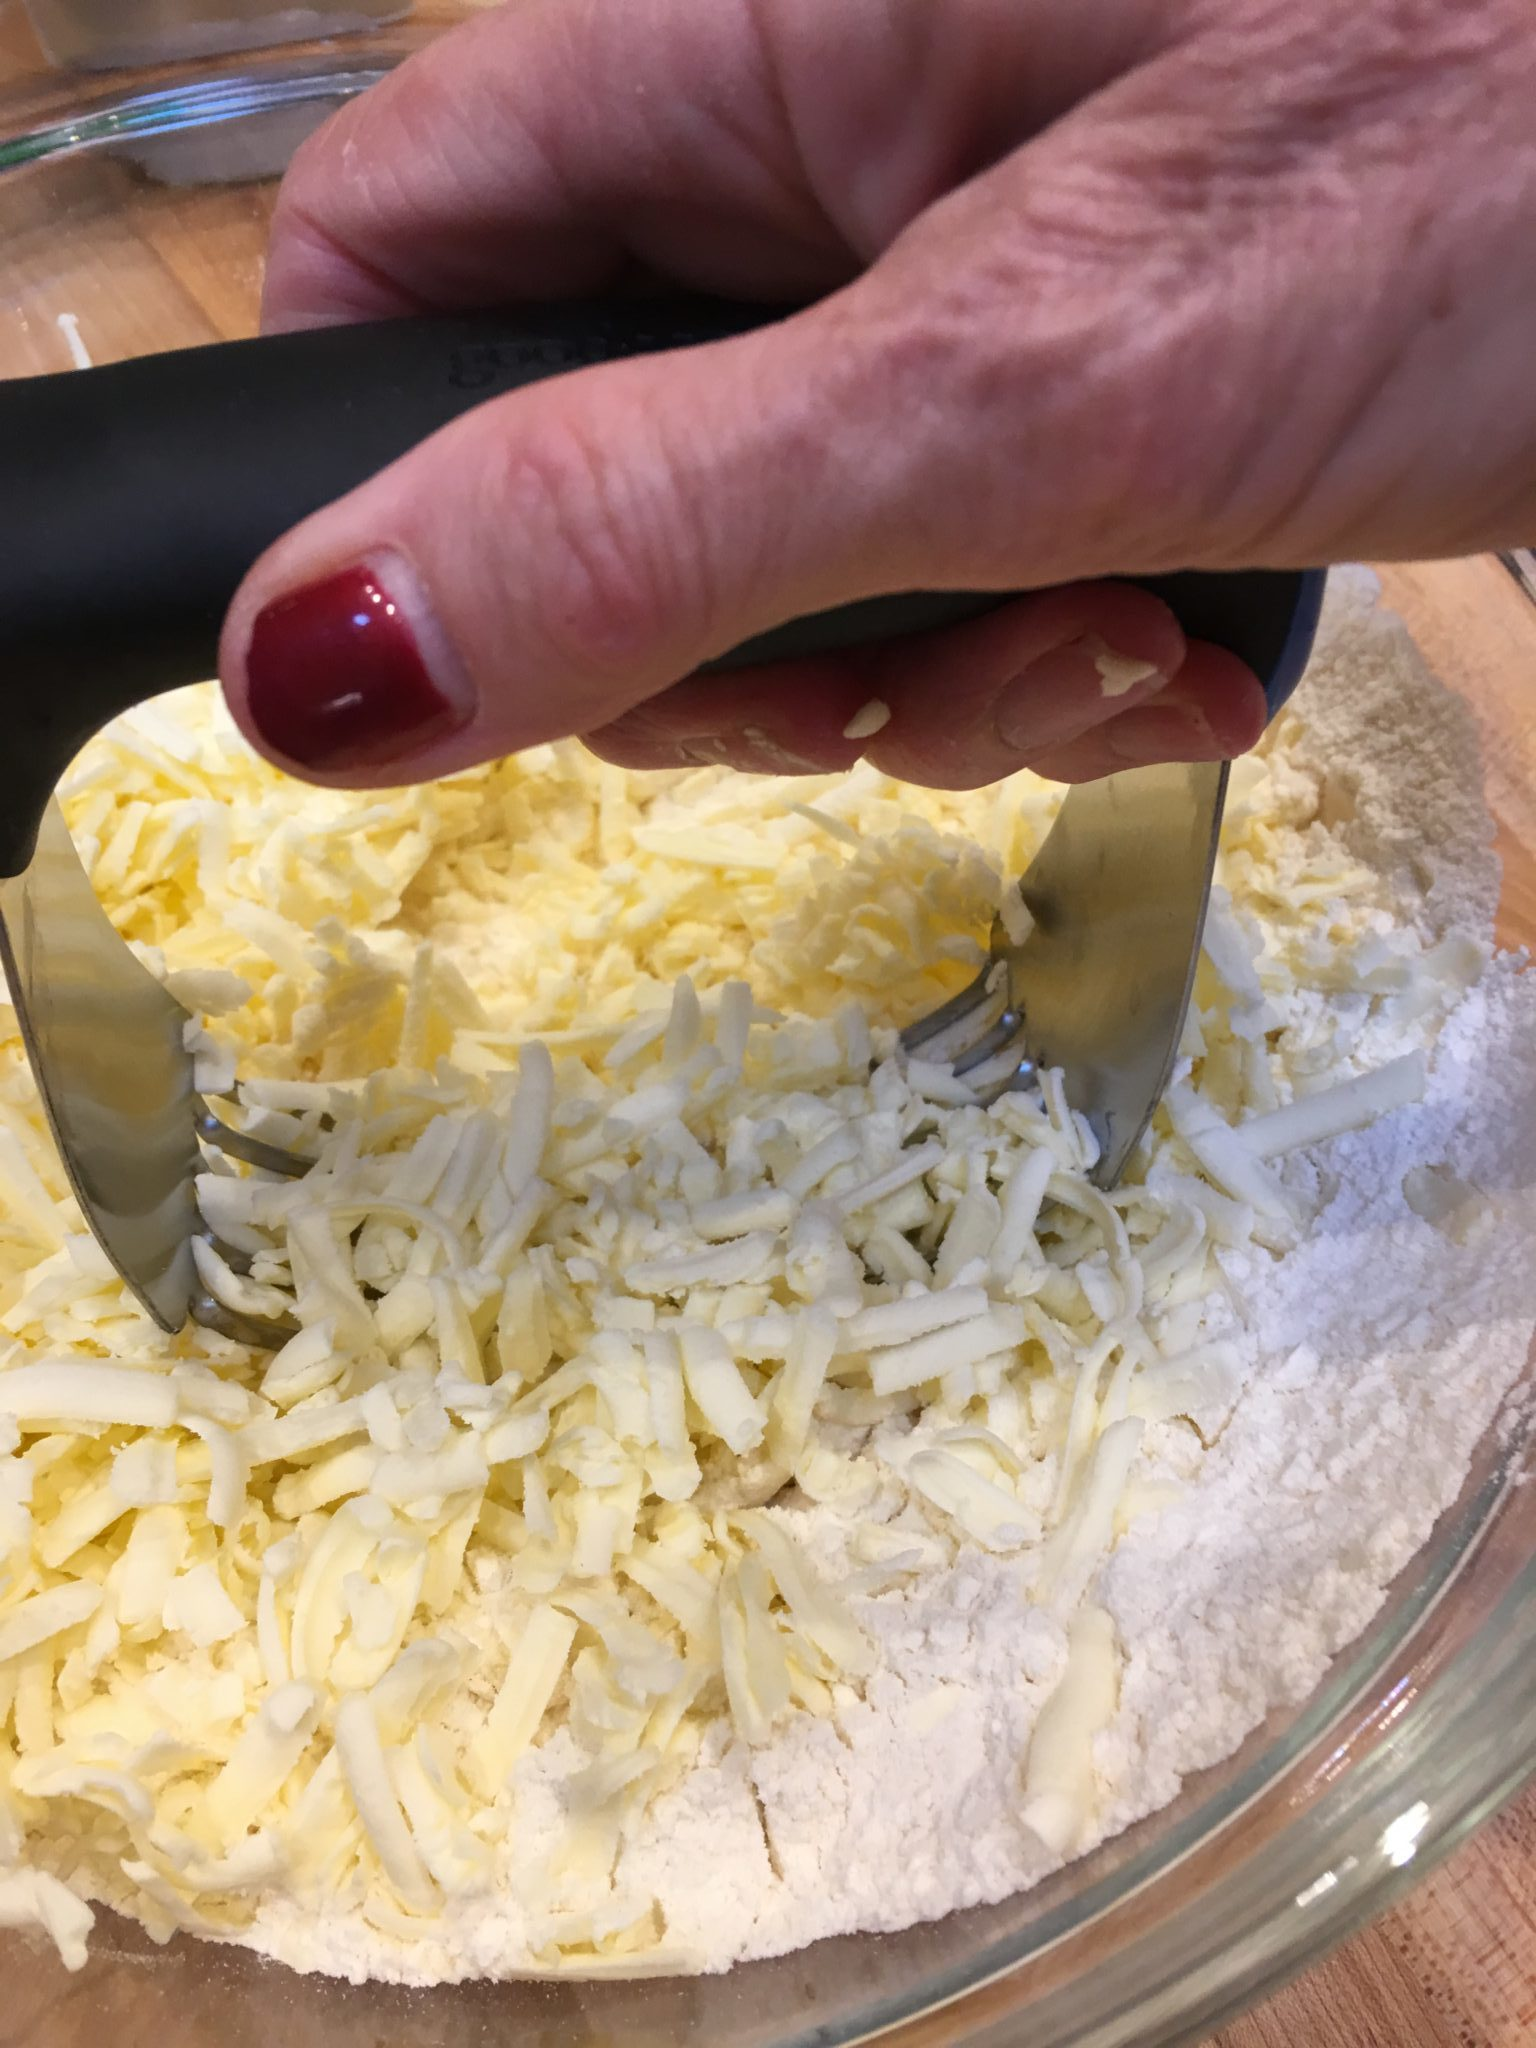 Making pastry by cutting butter into flour